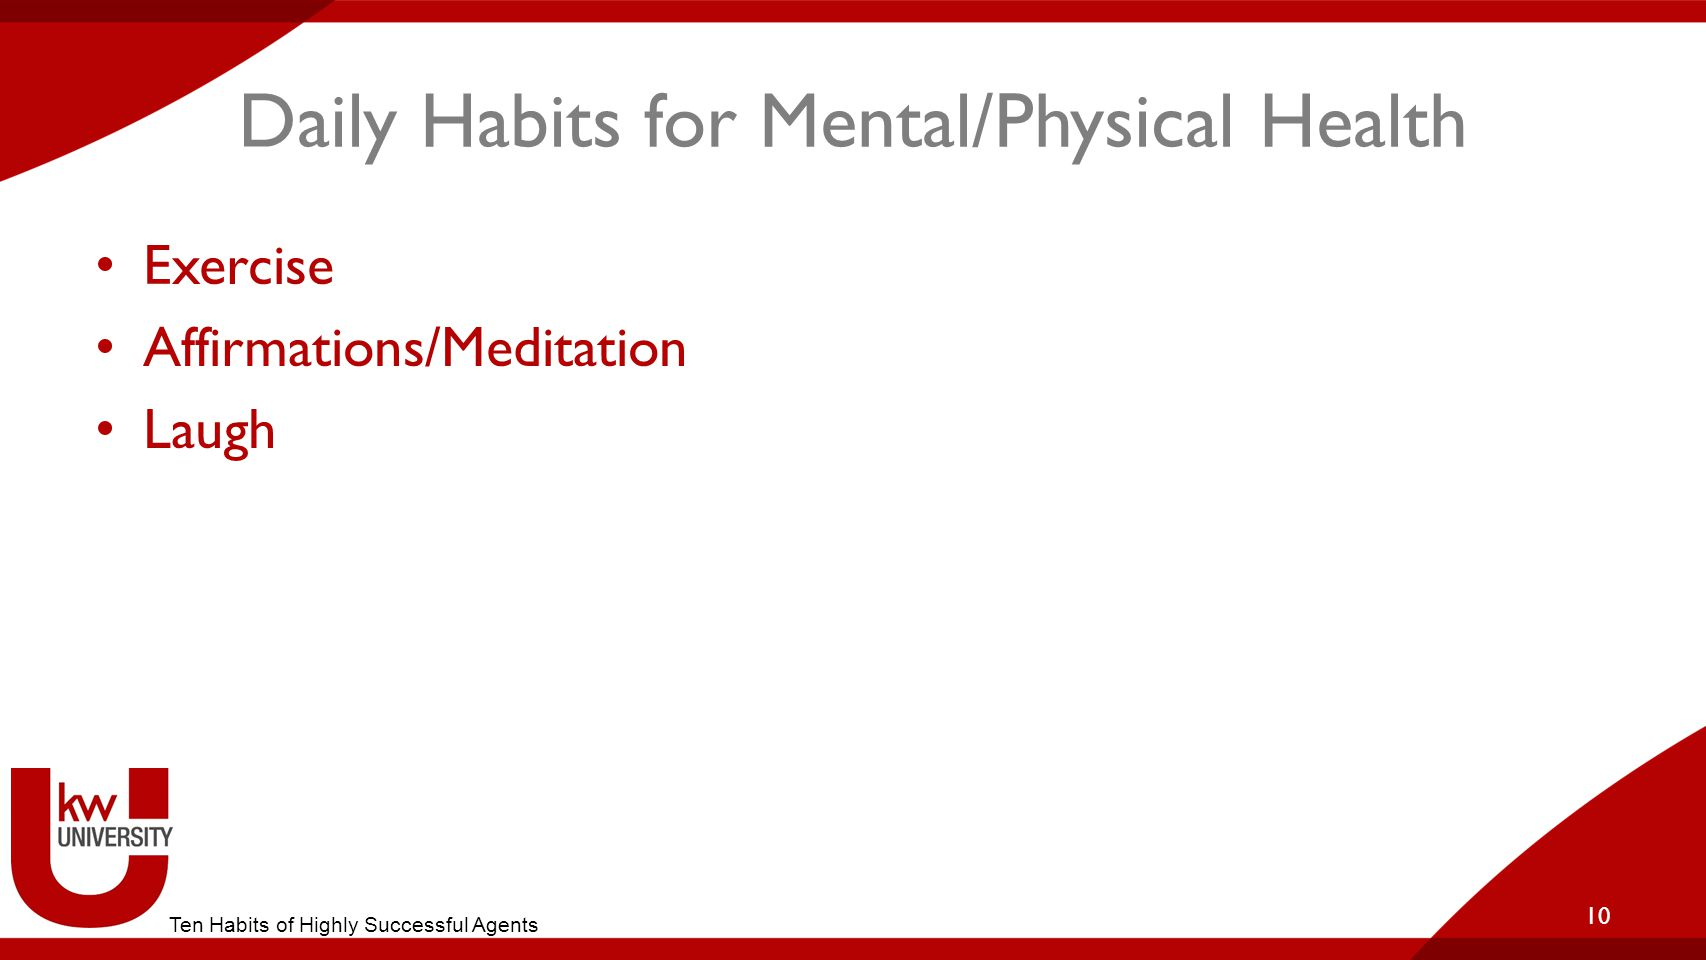 Daily Habits for Mental/Physical Health